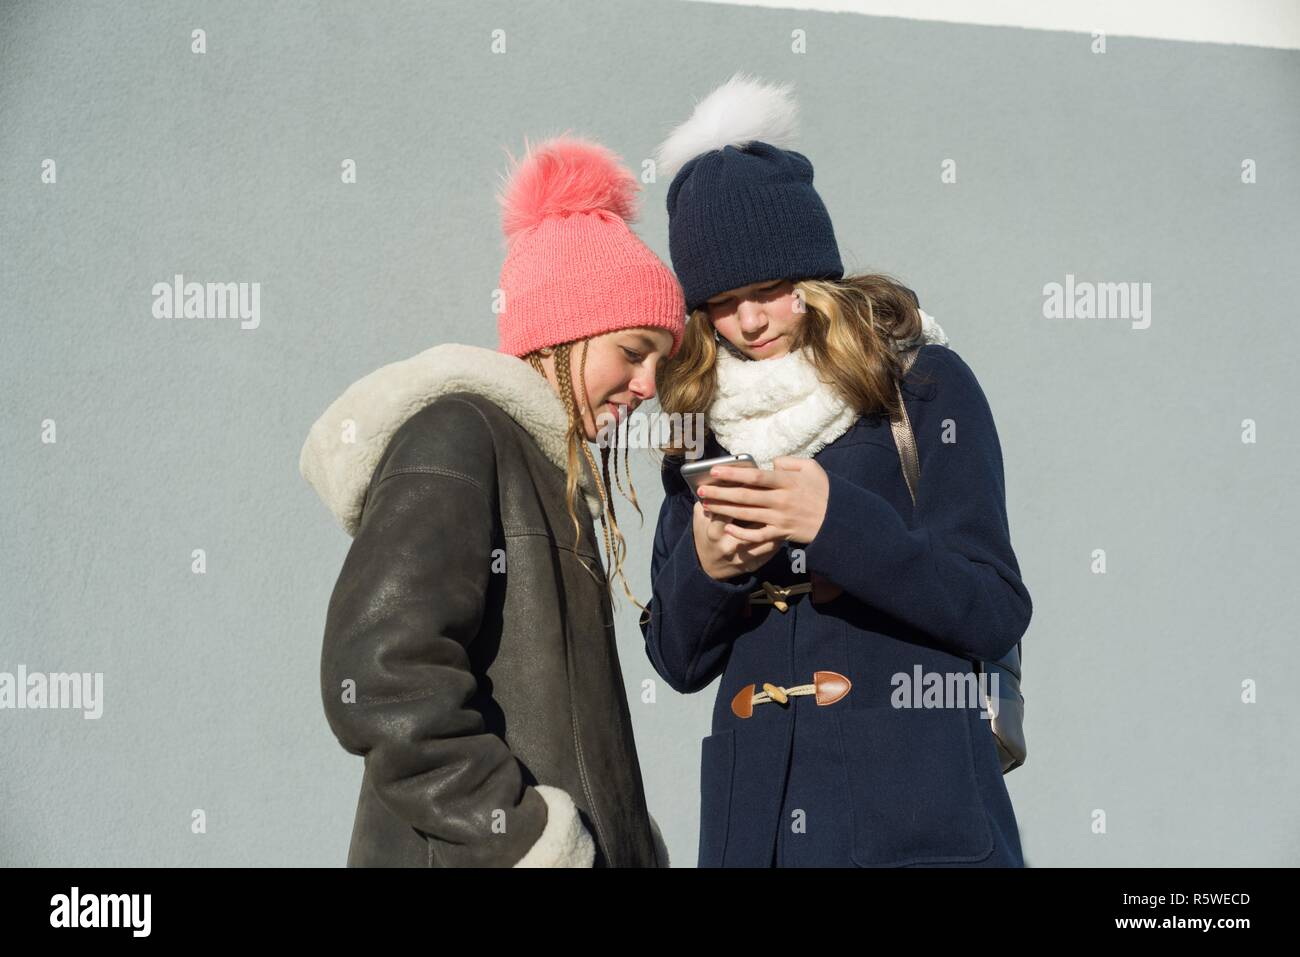 Close-up outdoor winter portrait of two teenage girls students in profile smiling and talking, girls looking at mobile phone. - Stock Image